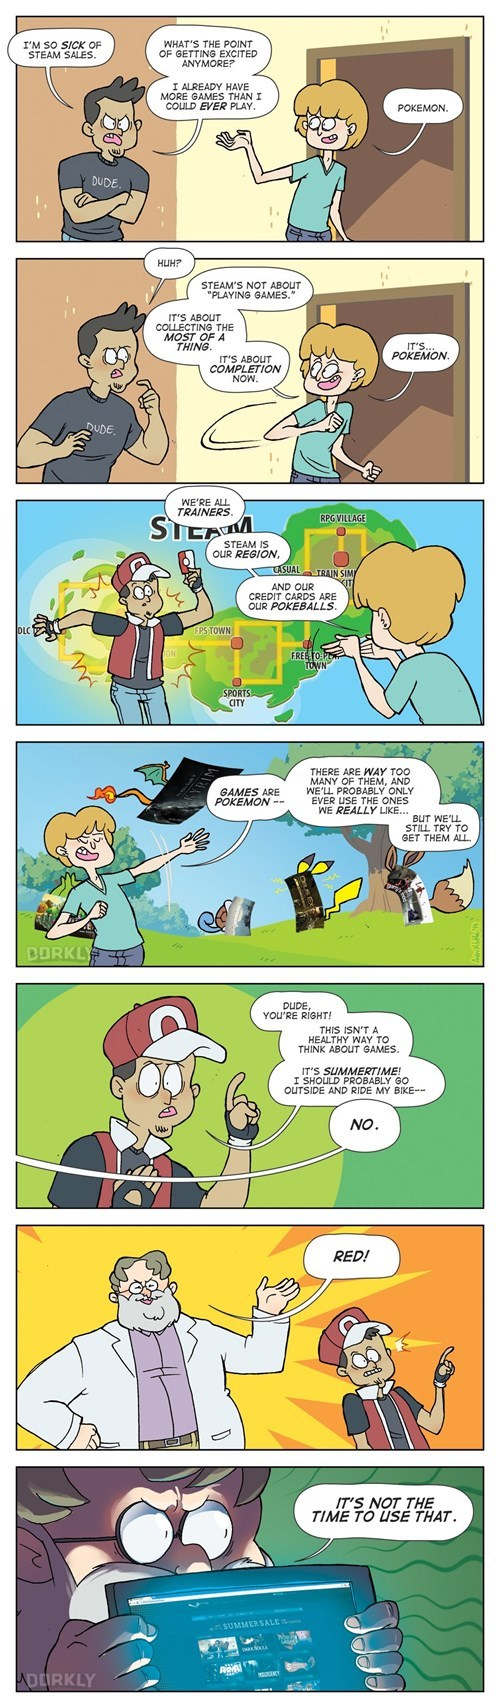 dorkly steam sales steam web comics